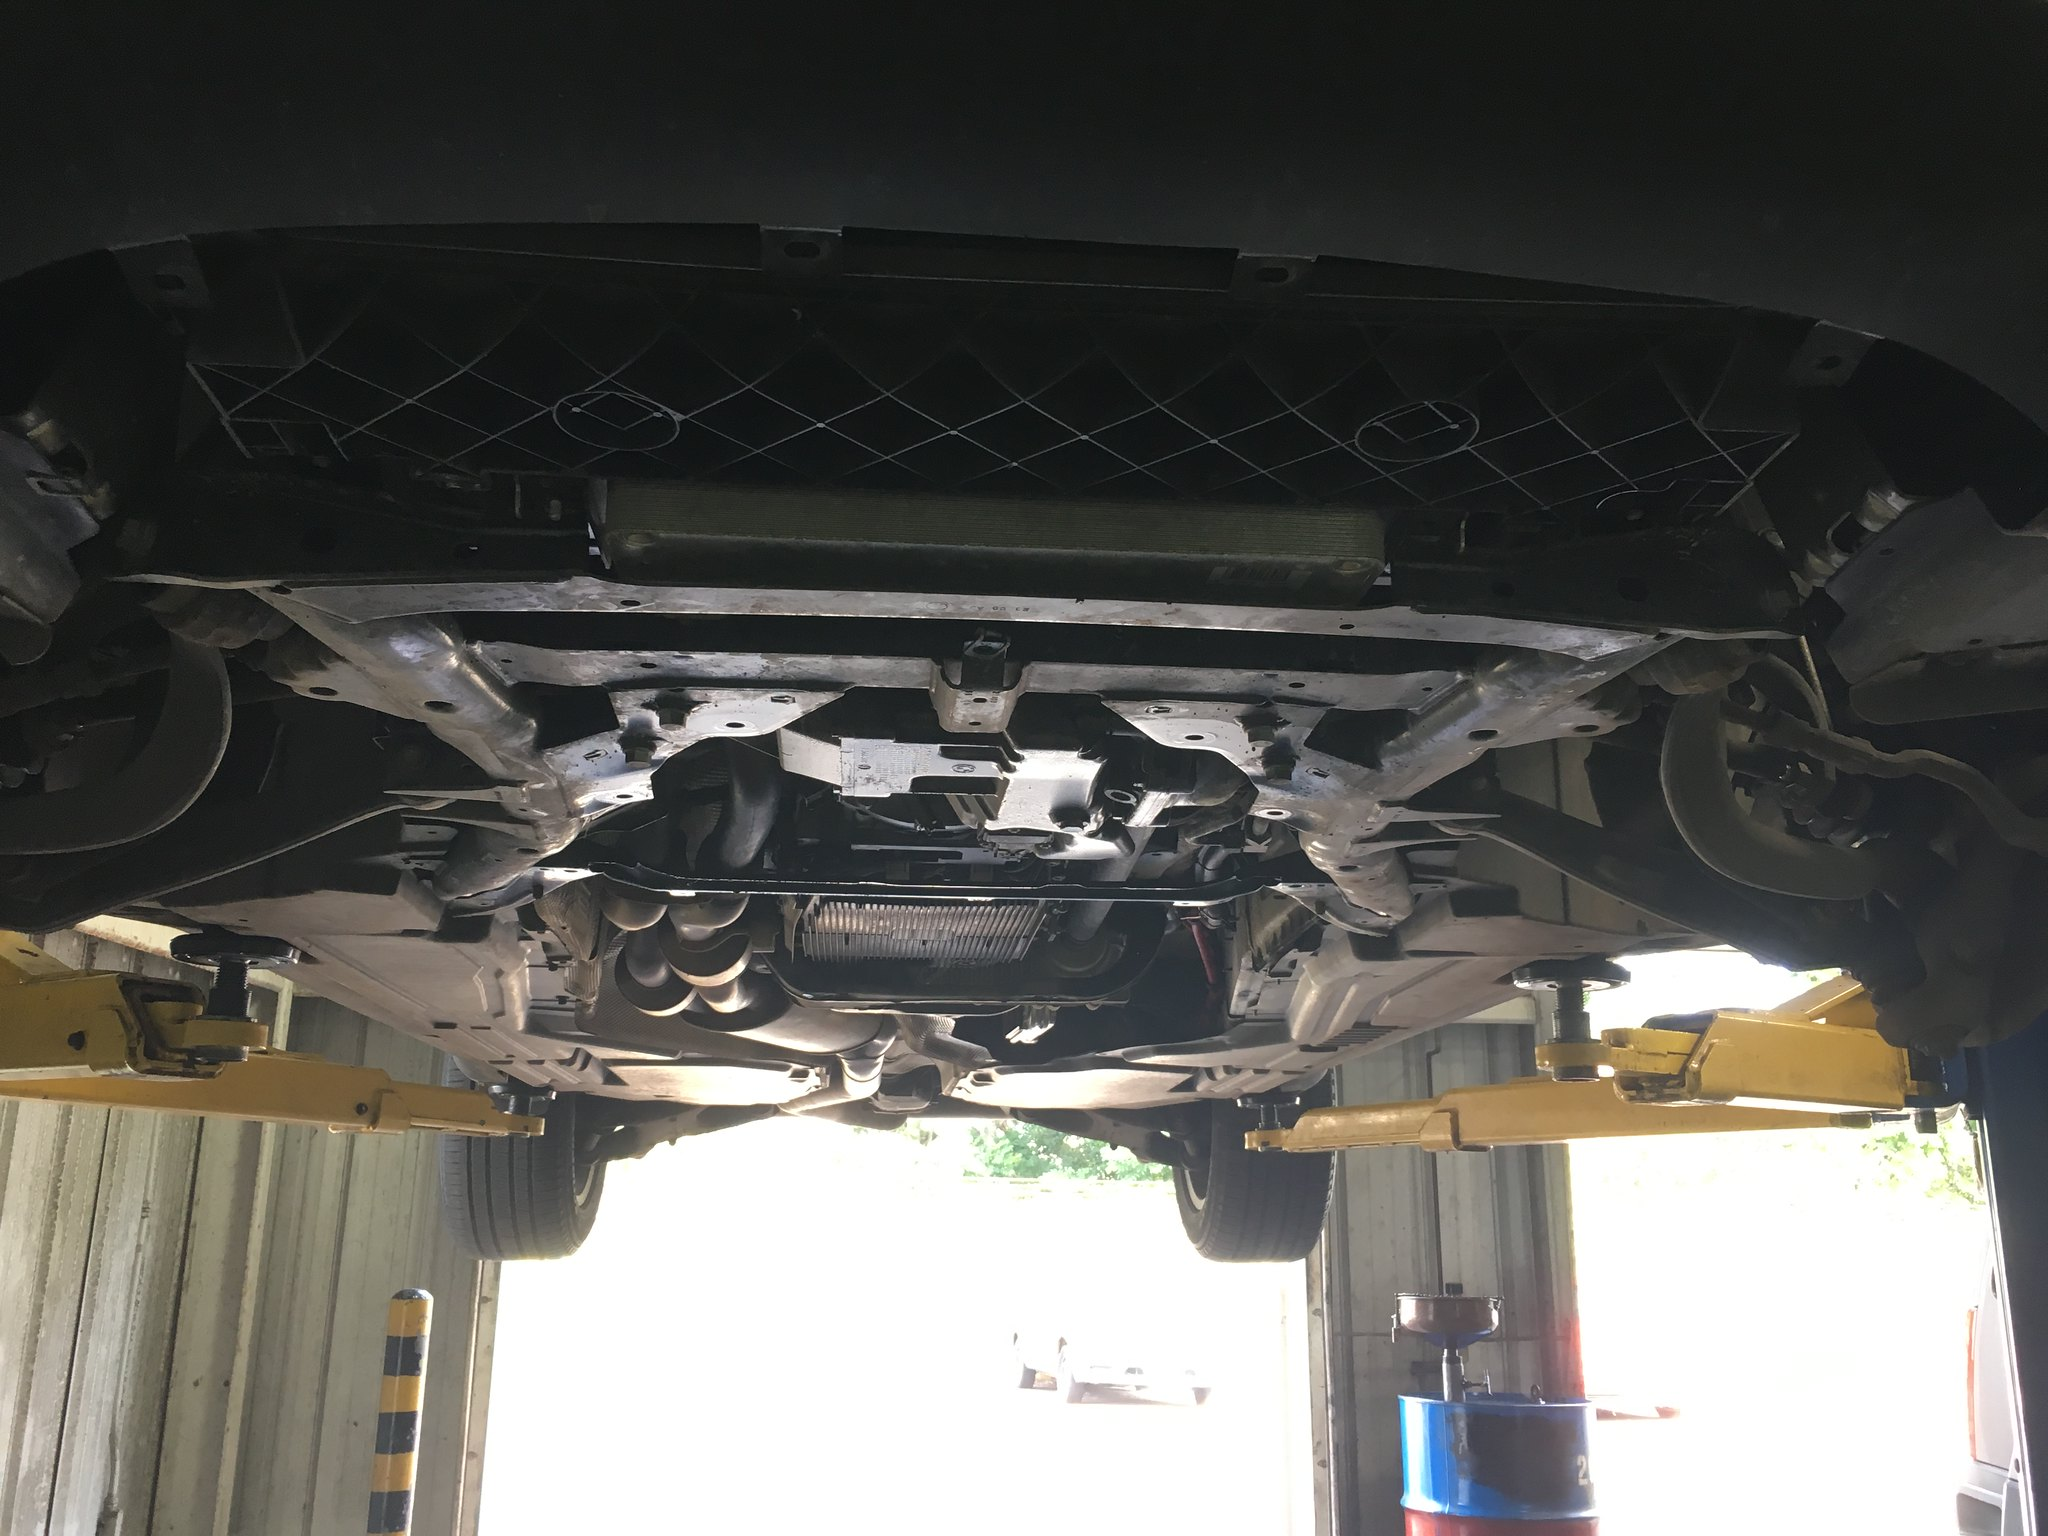 E70 X5 3 0si Oil Pan and front suspension DIY COMPLETE